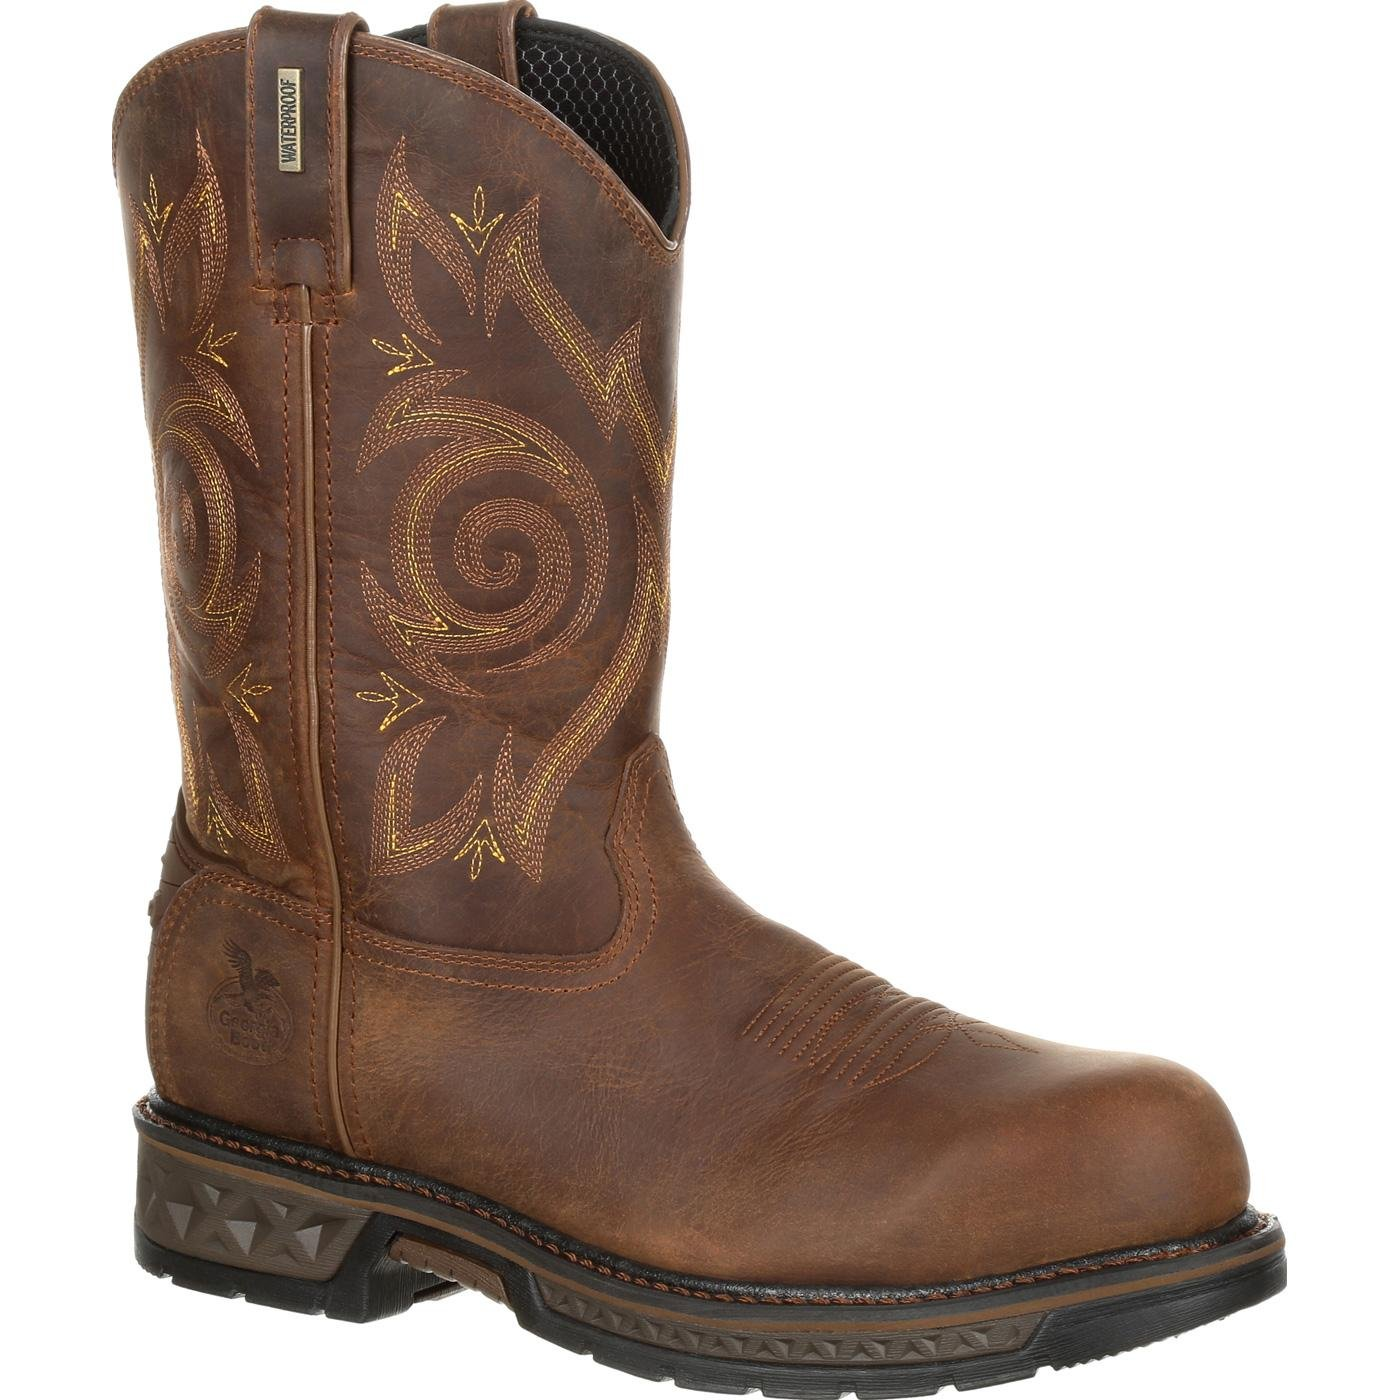 Georgia Men's Boot Carbo-Tec Lt Waterproof Work Composite Toe Brown 14 EE